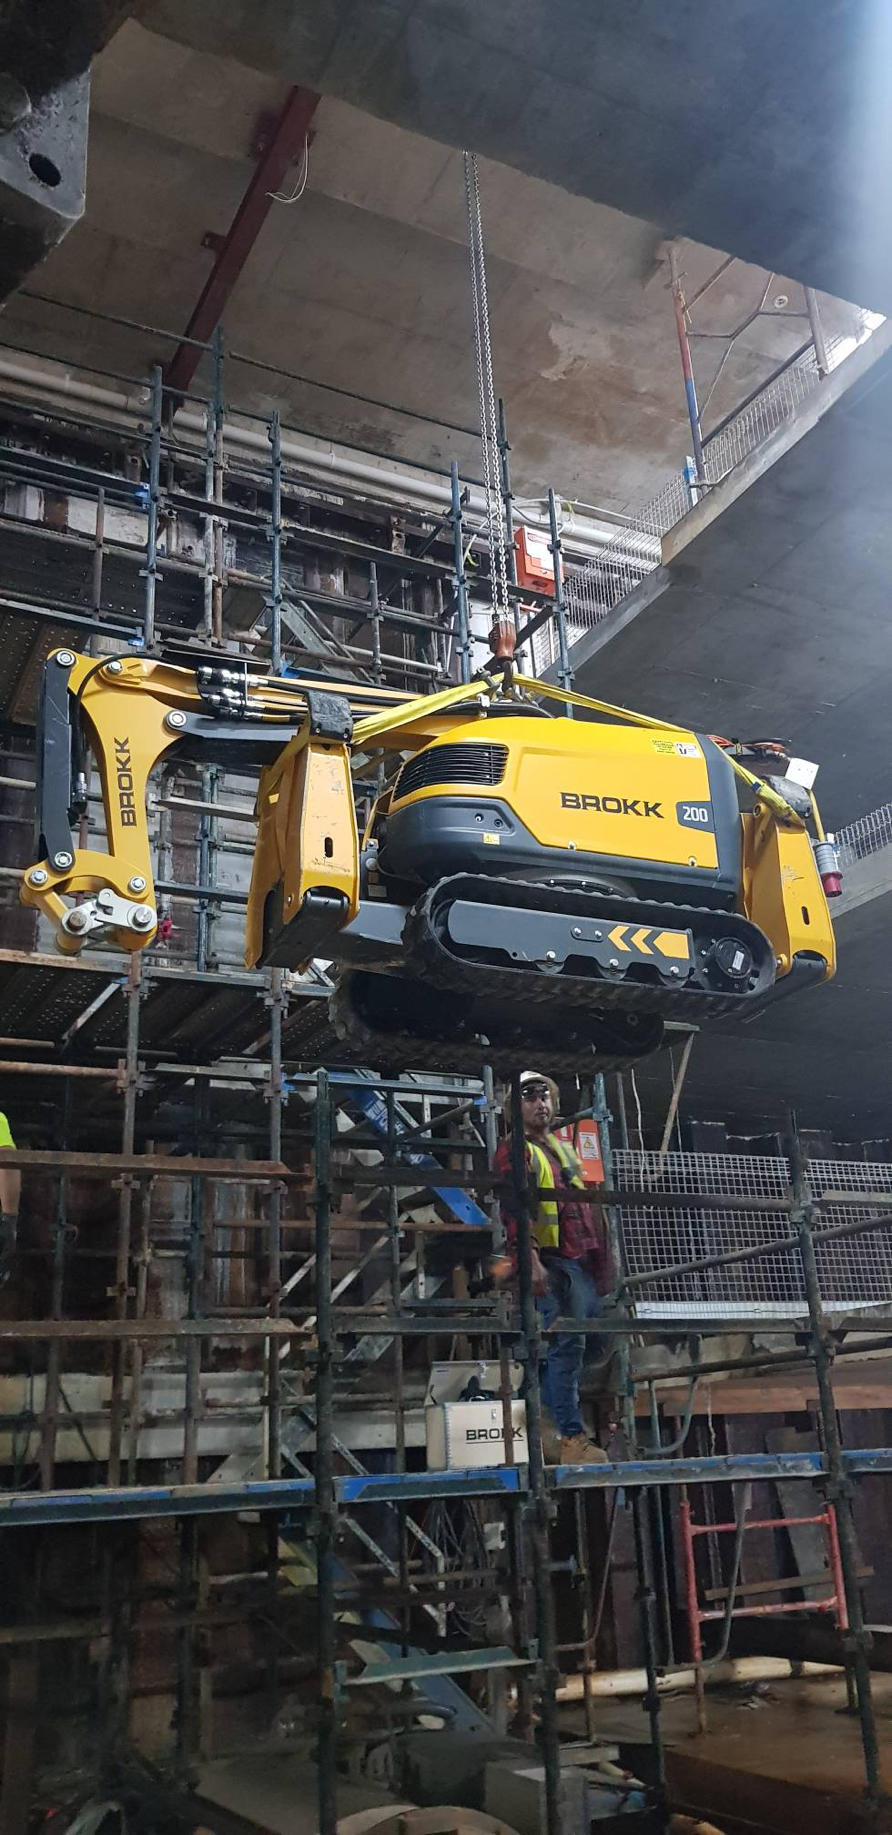 brokk 200 demolition robot sydney